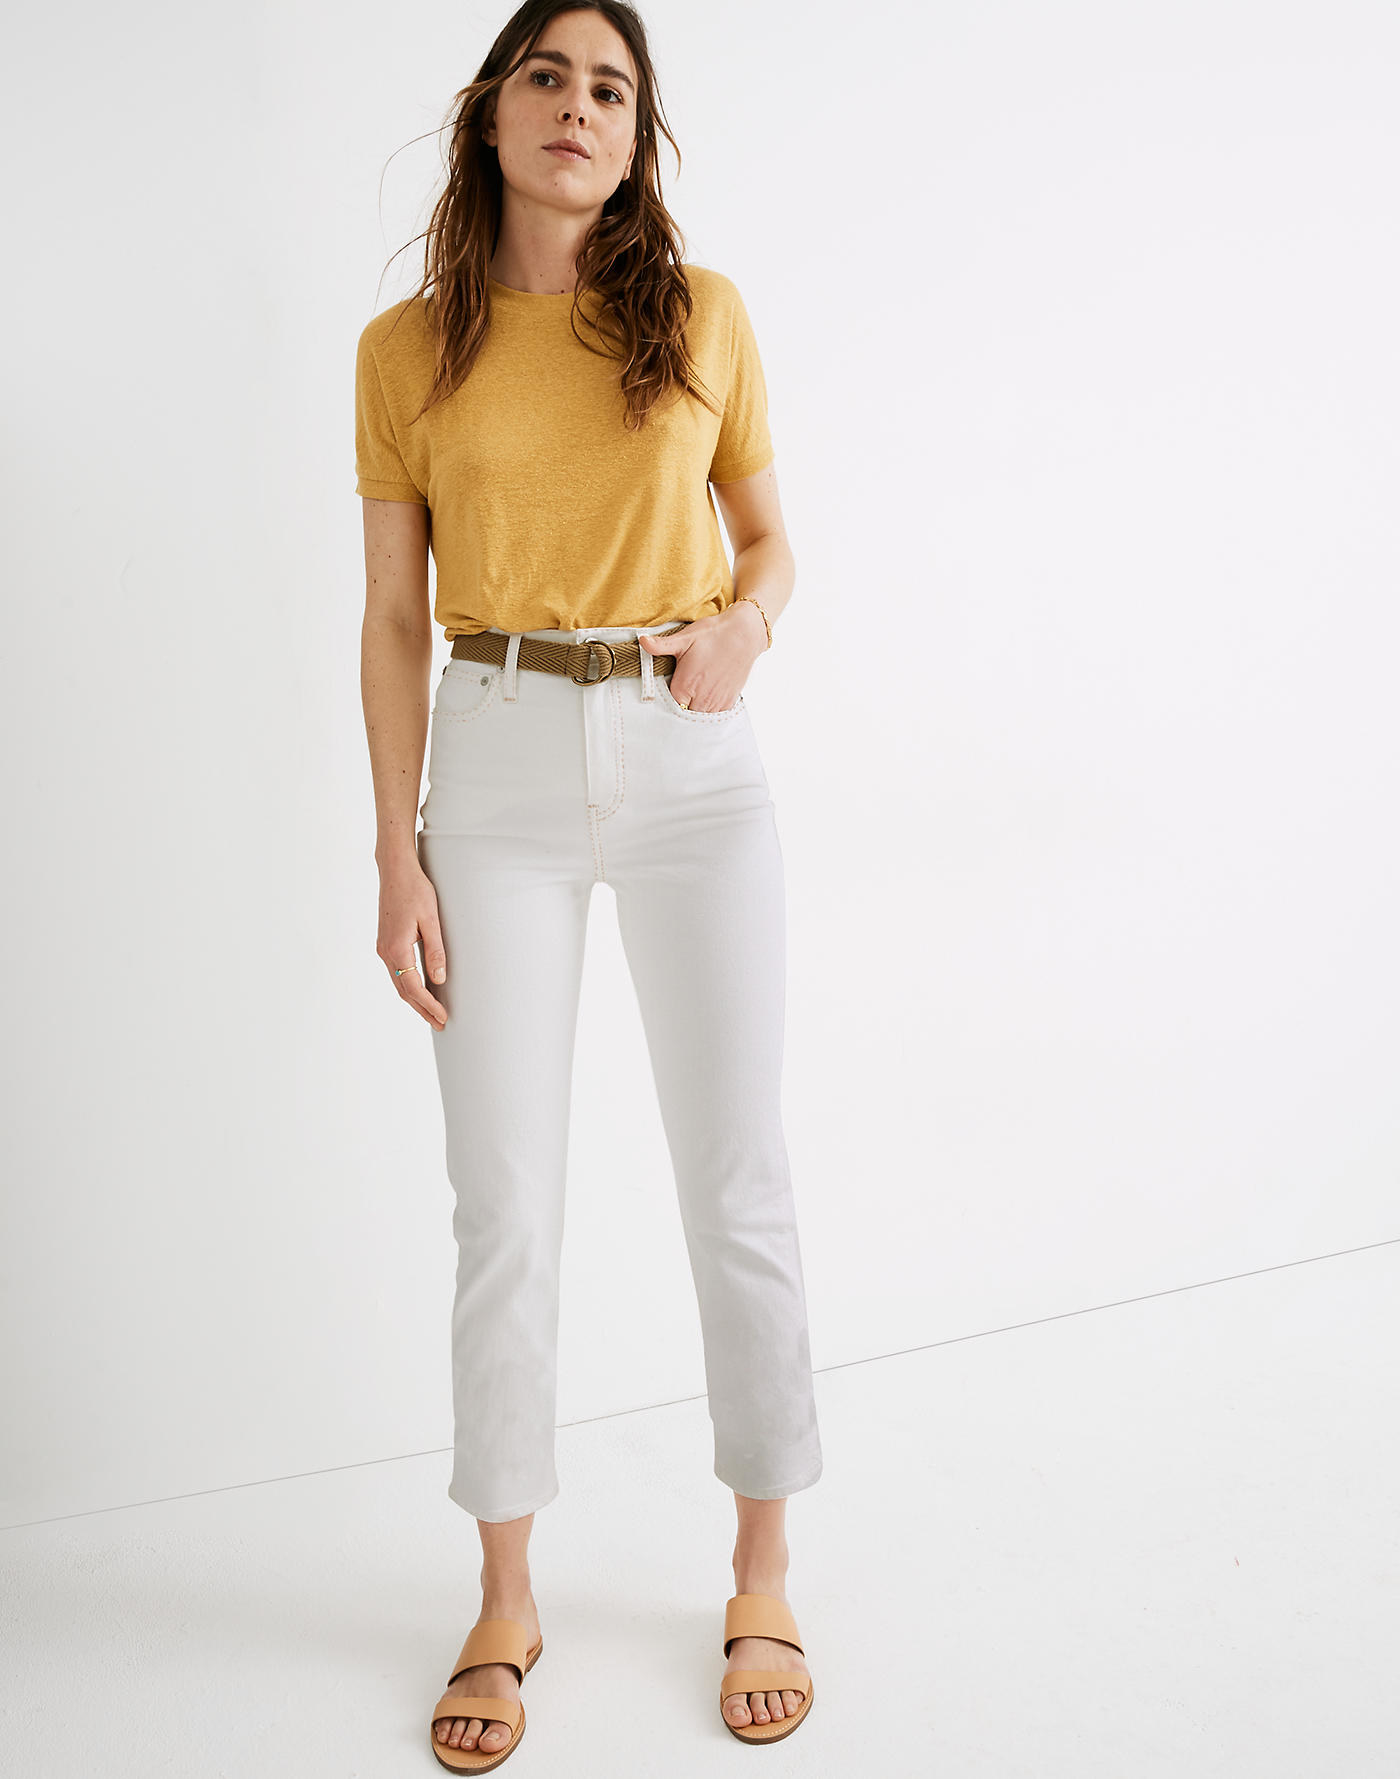 Model wearing the cropped white high-waisted straight jeans